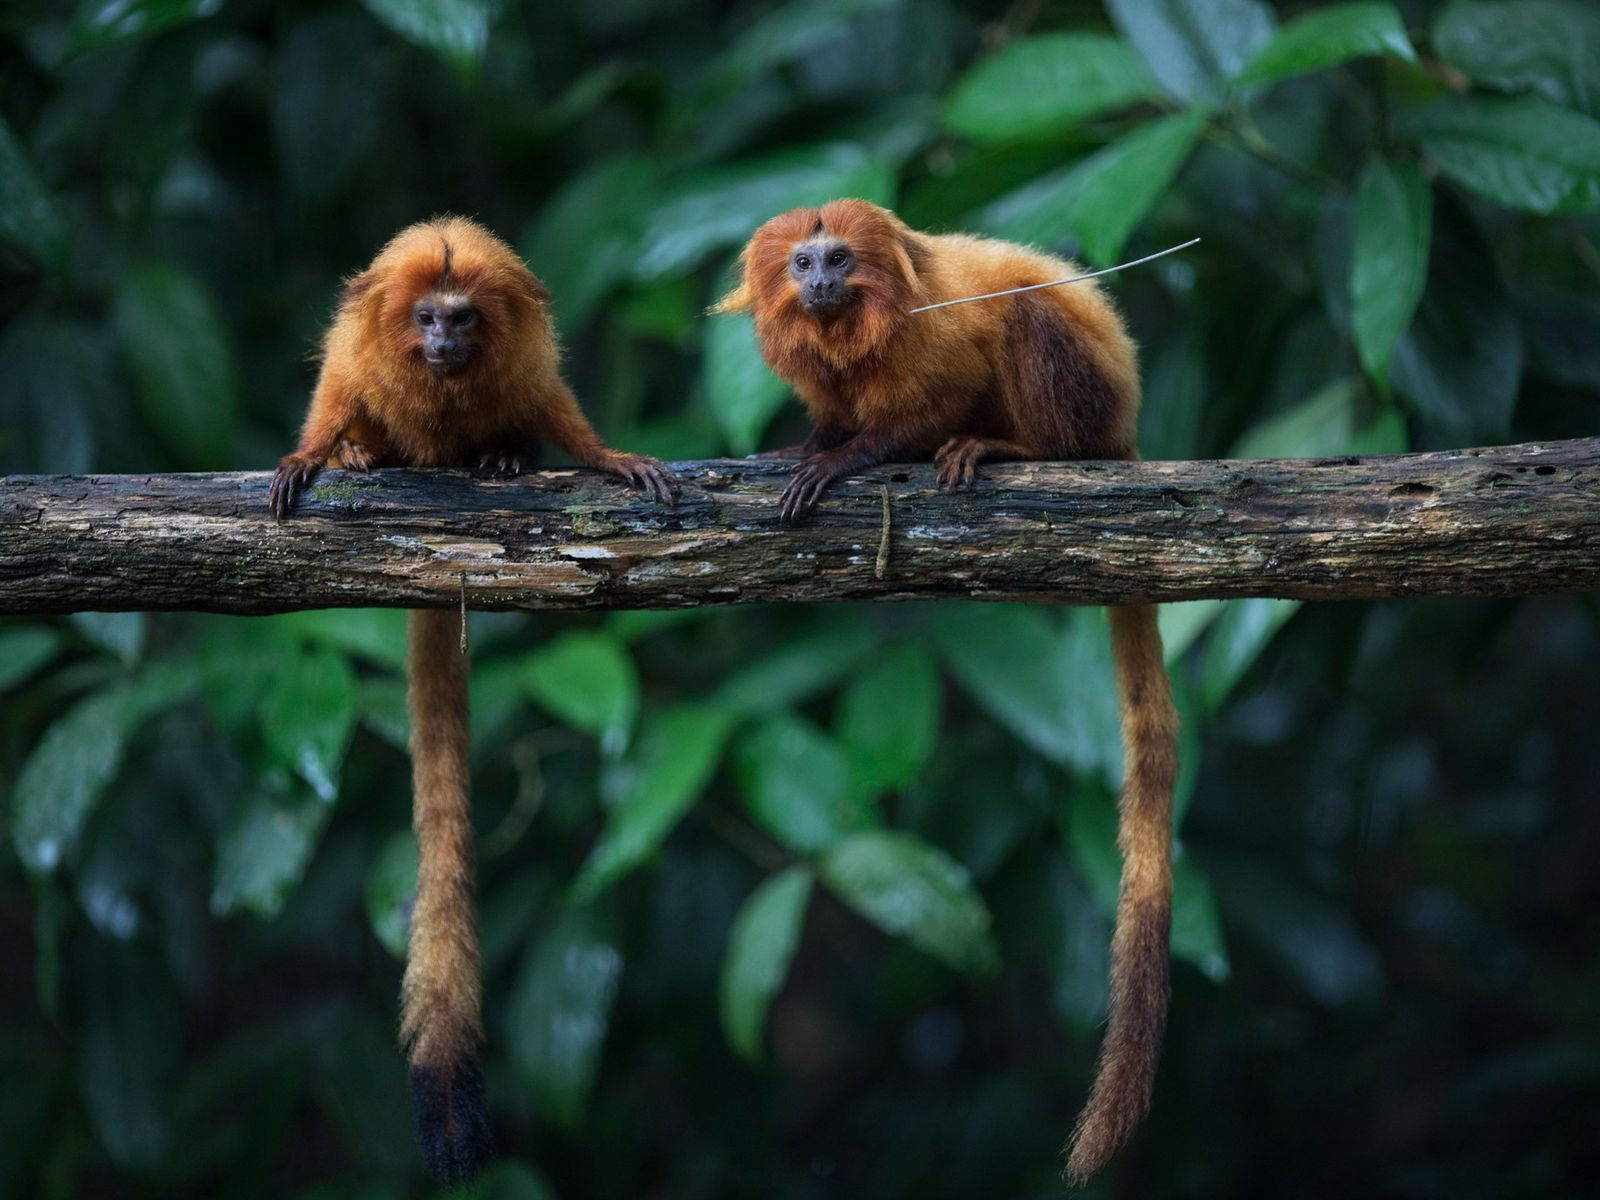 Endangered golden lion tamarins sit on a branch in Brazil's Atlantic Forest. Though their numbers have ...